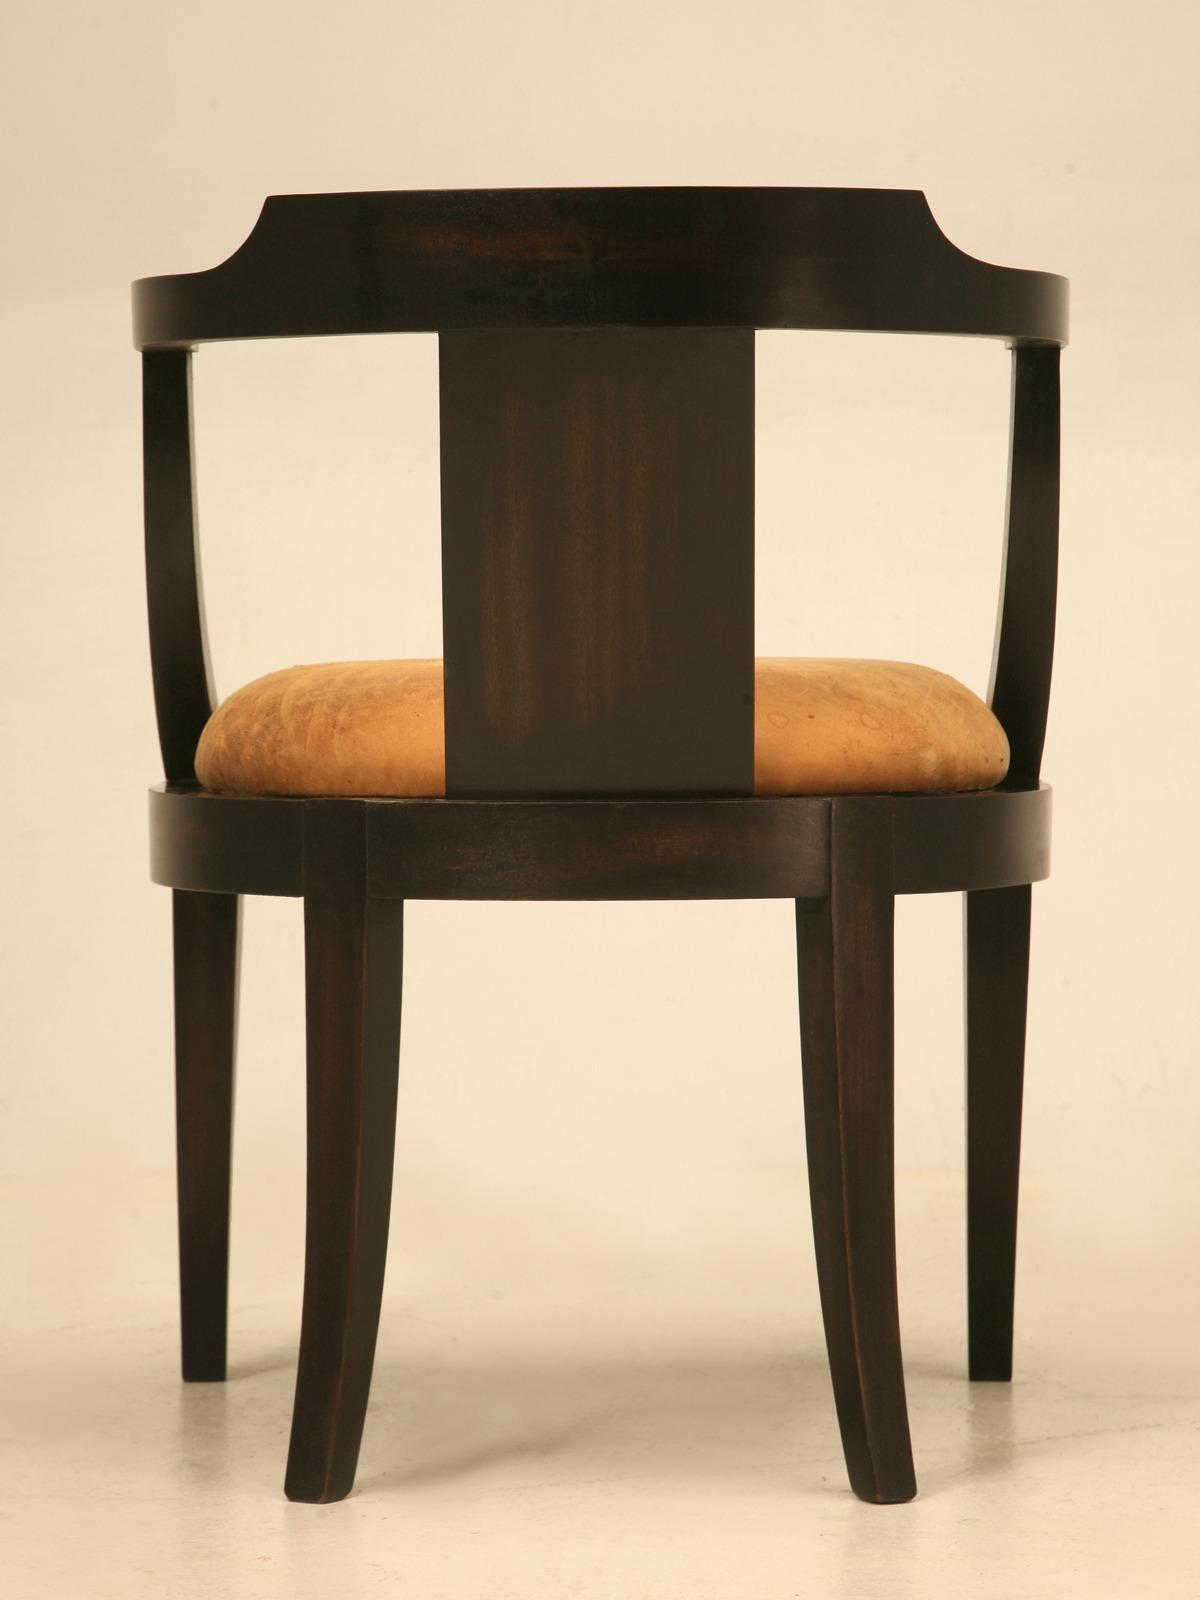 antique mahogany office chair teal upholstered dining chairs fine french ebonized desk with a leather seat cushion for sale image 10